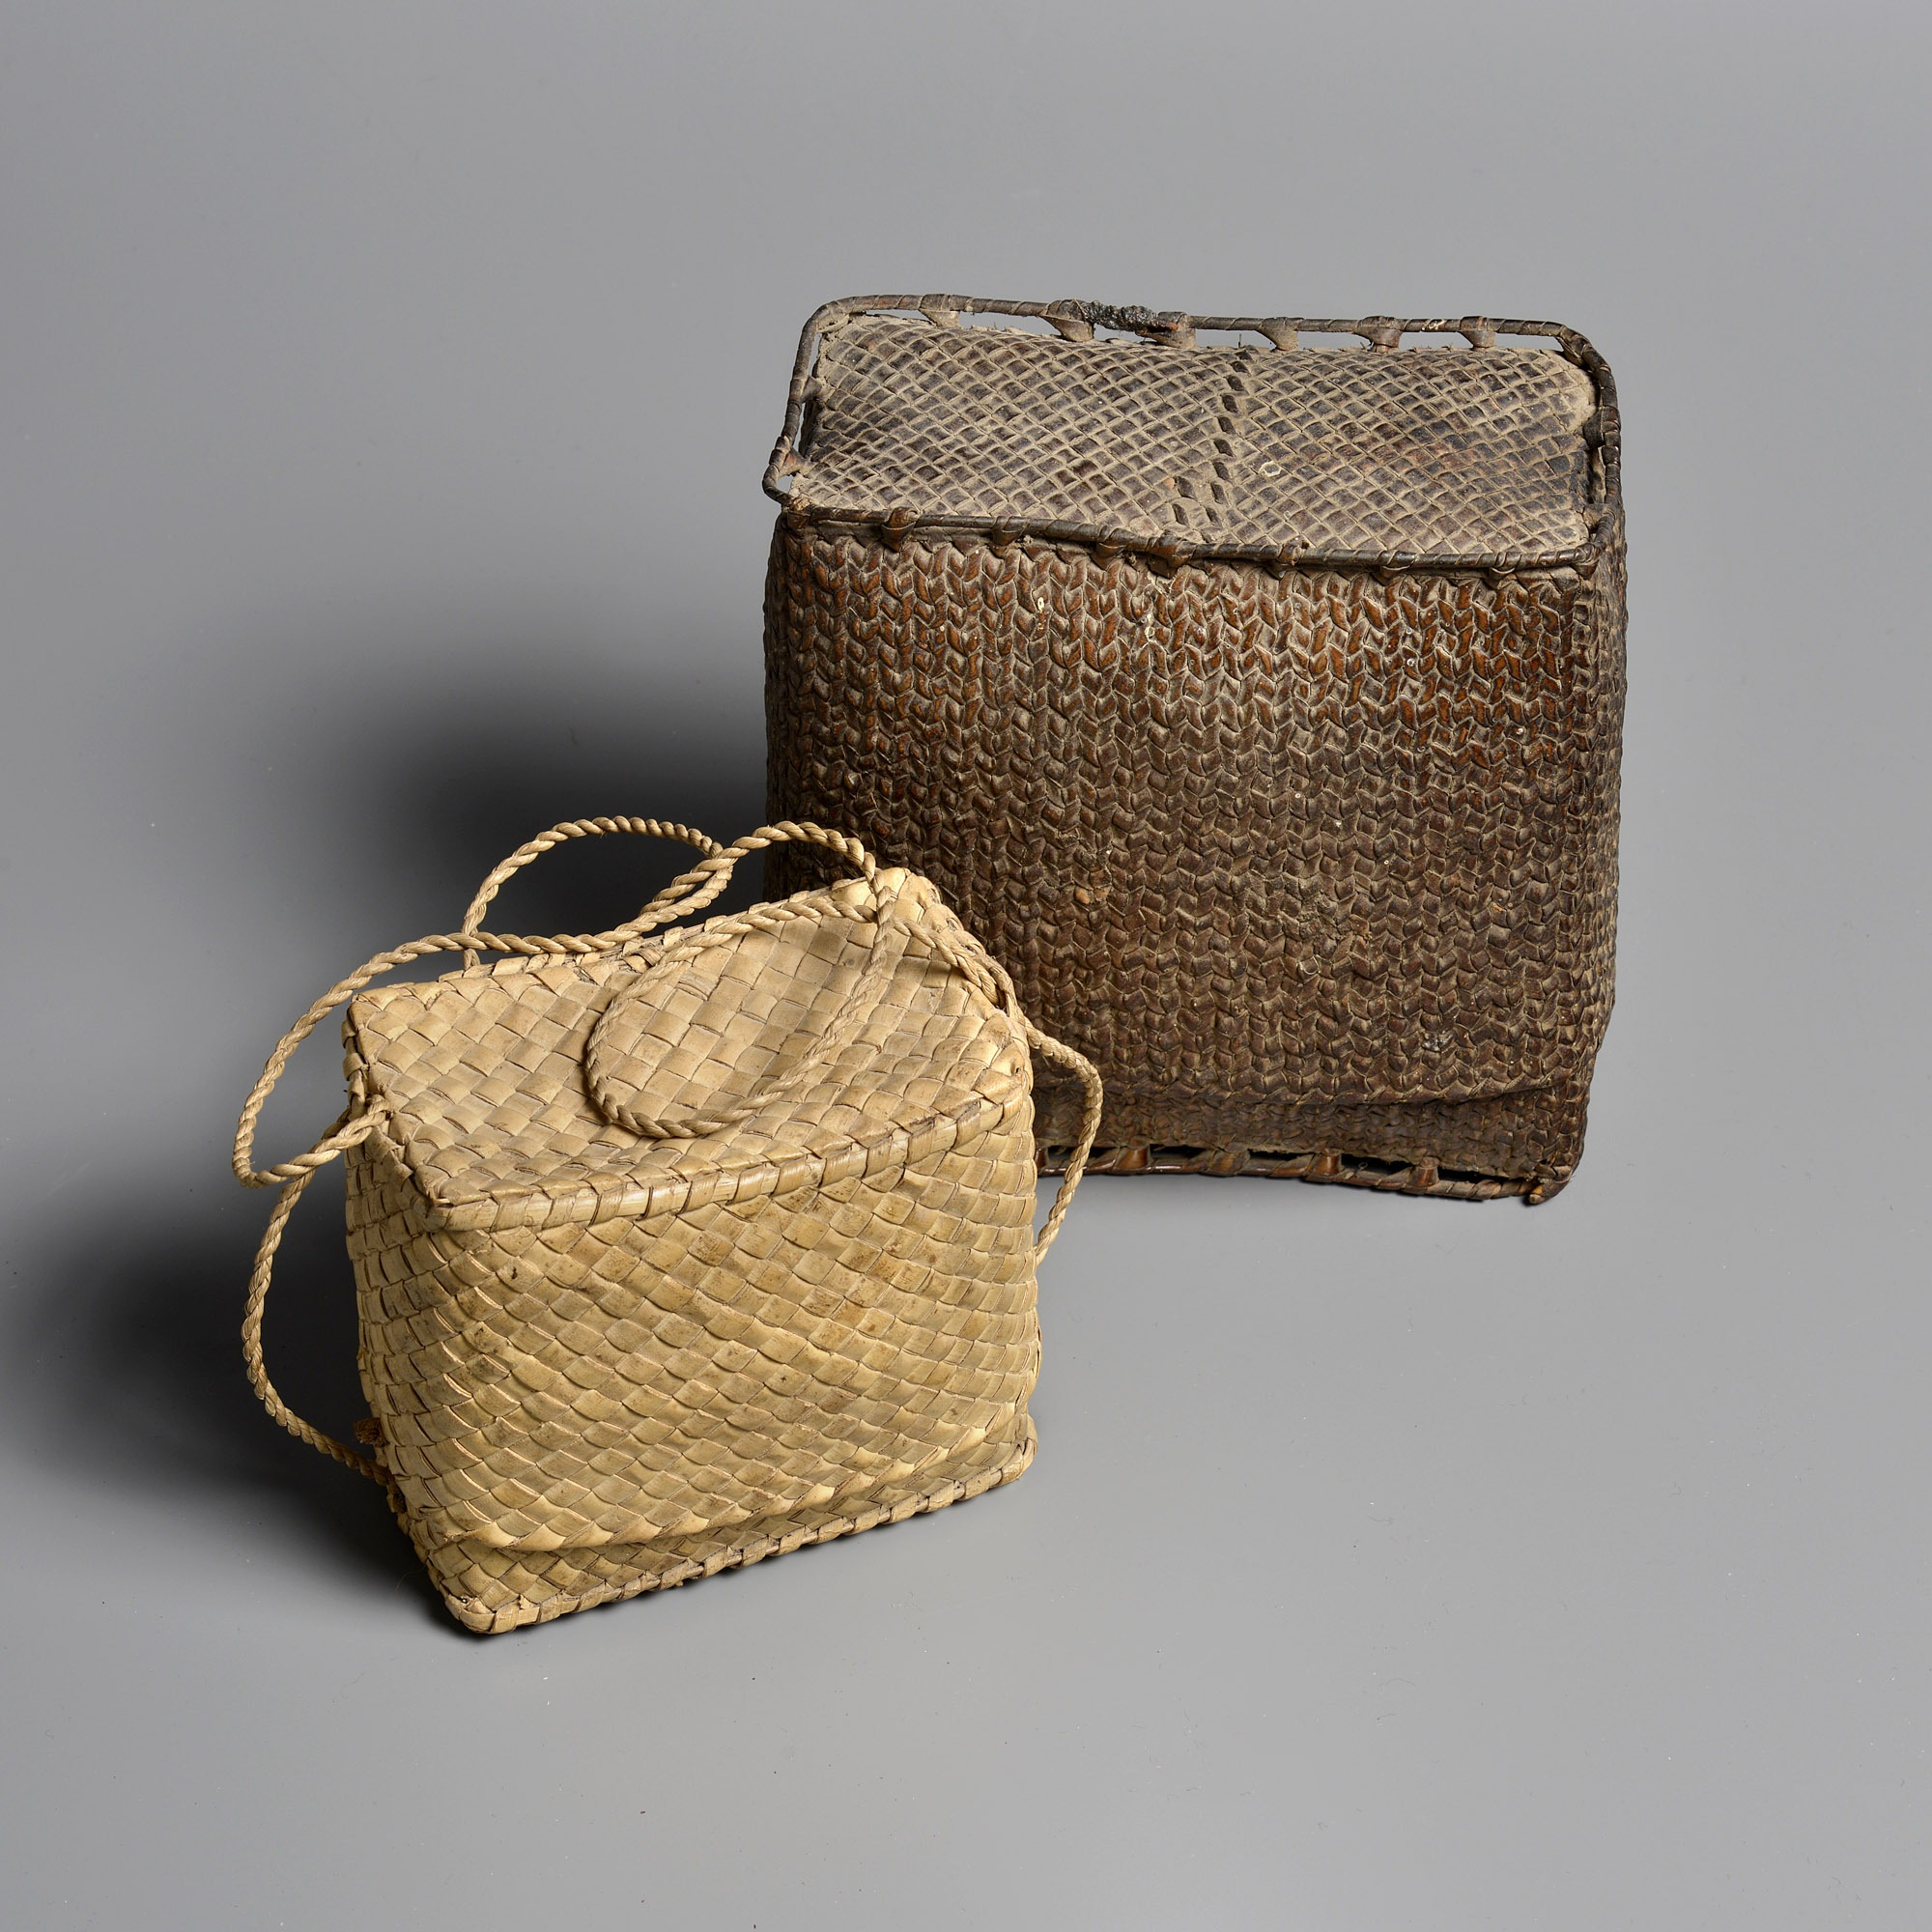 Timur & Alor Basketry.